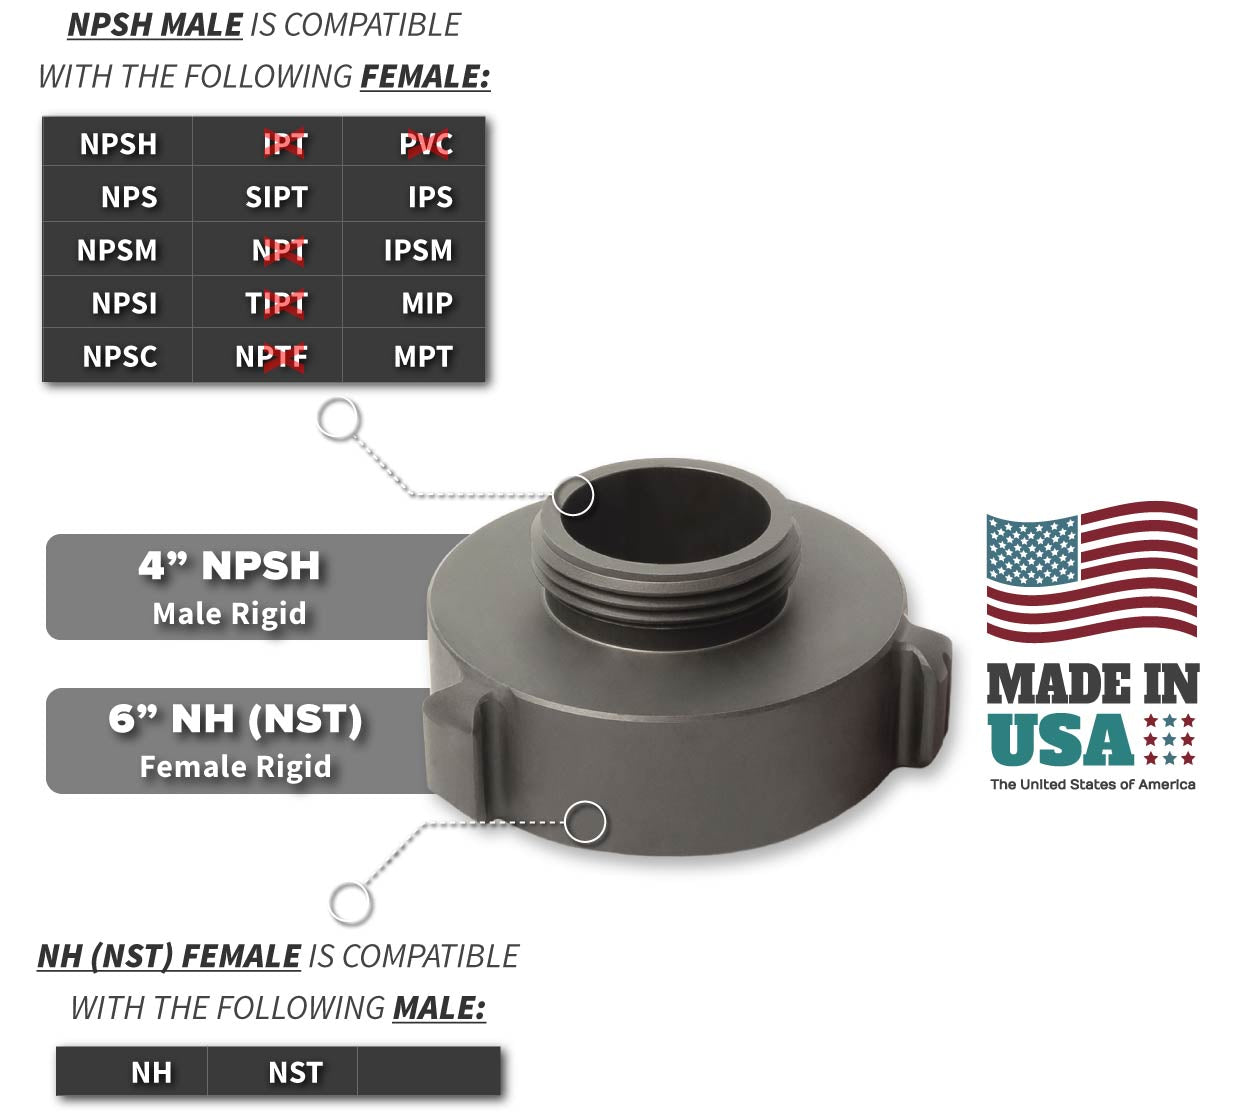 6 Inch NH-NST Female x 4 Inch NPSH Male Compatibility Thread Chart